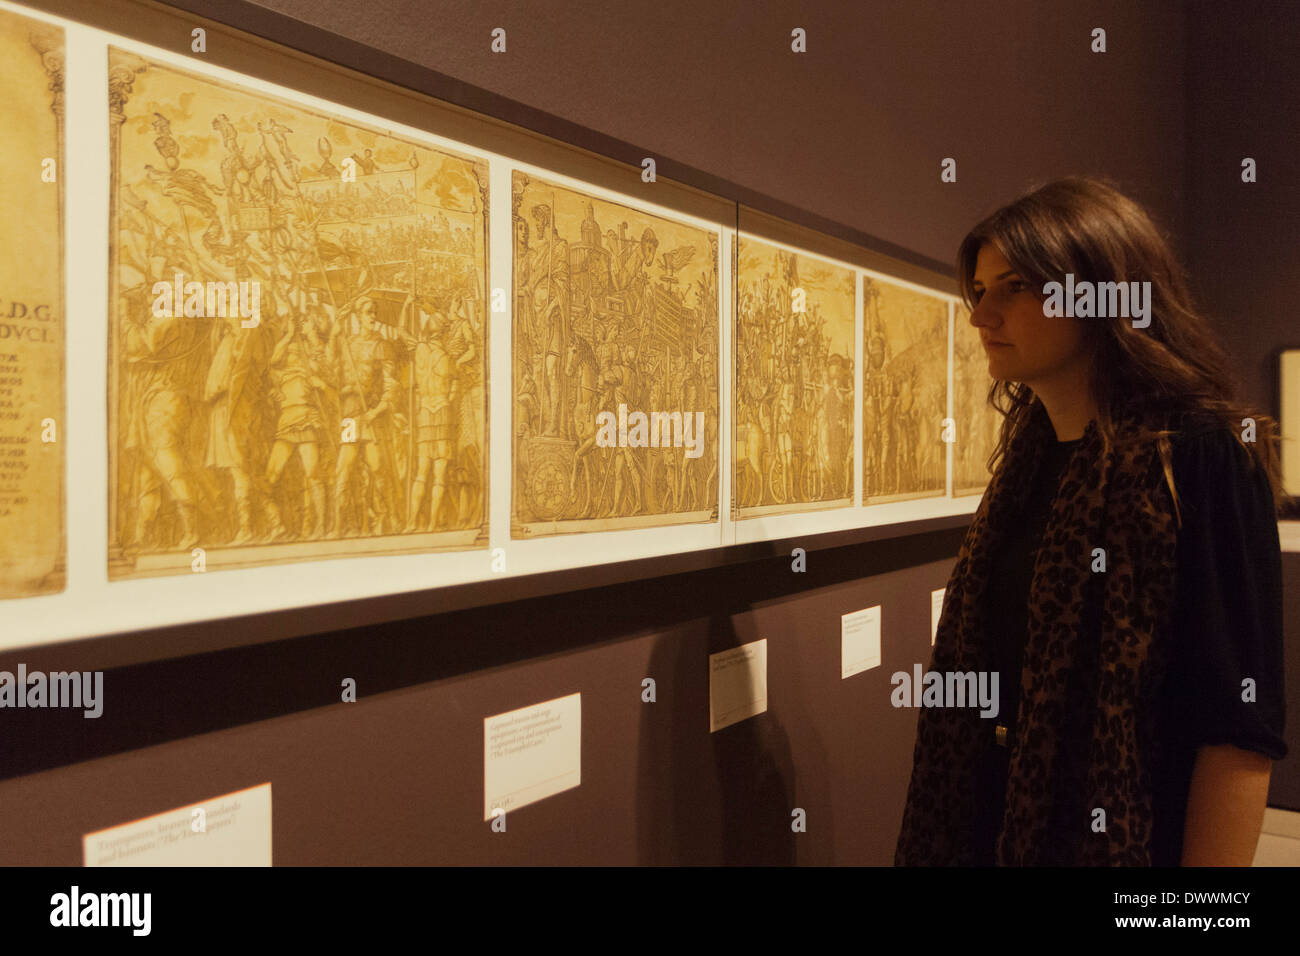 Renaissance Impressions: Chiaroscuro Woodcuts, Exhibition at the Royal Academy of Arts, London - Stock Image